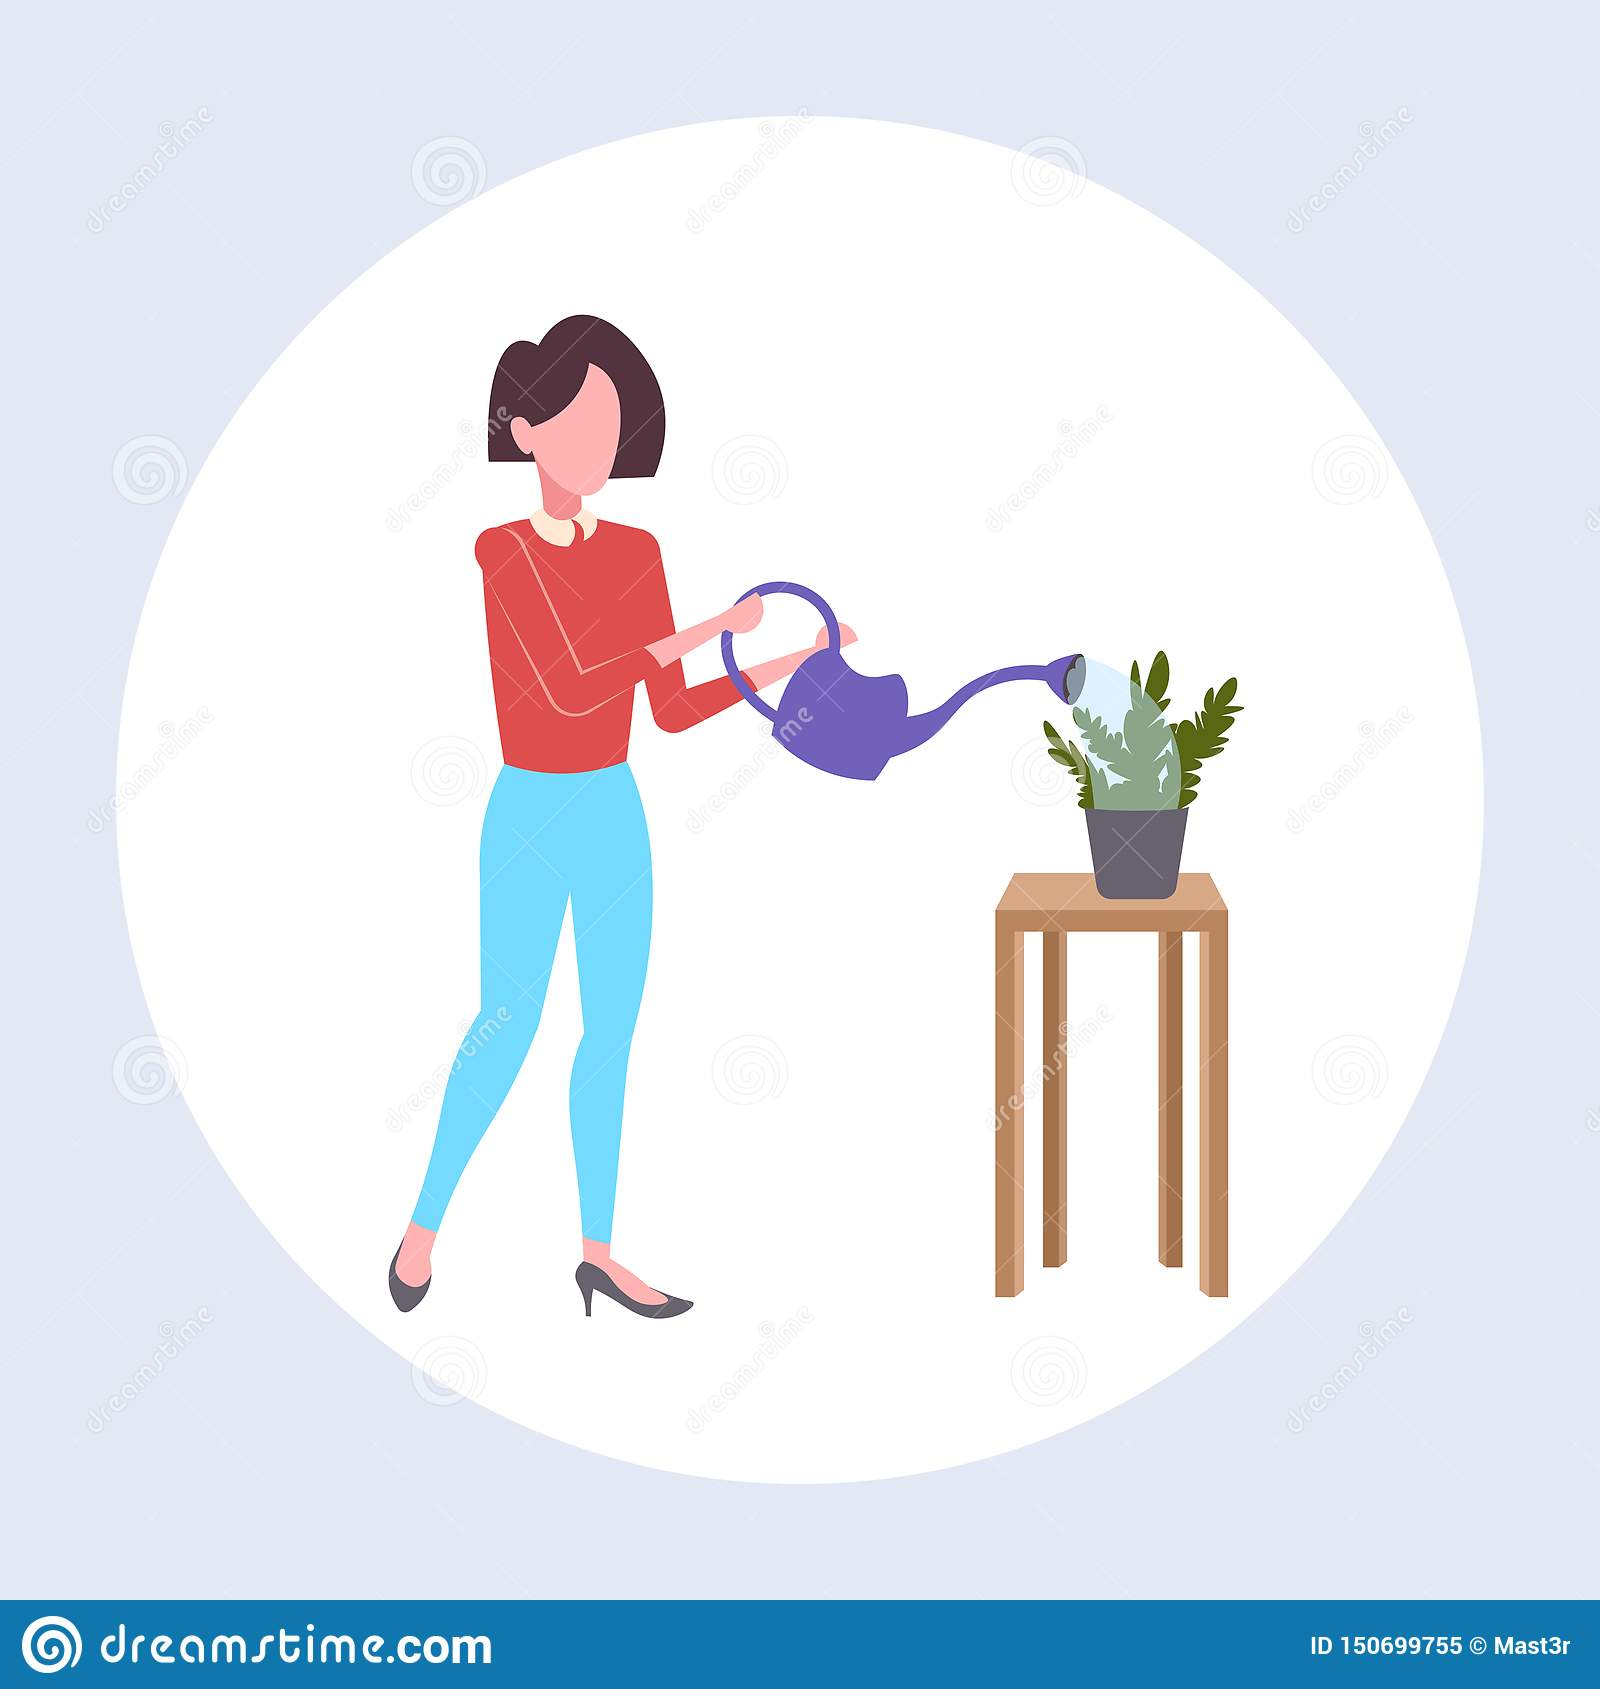 Housewife pouring water in domestic potted plant woman holding watering can doing housework concept female cartoon